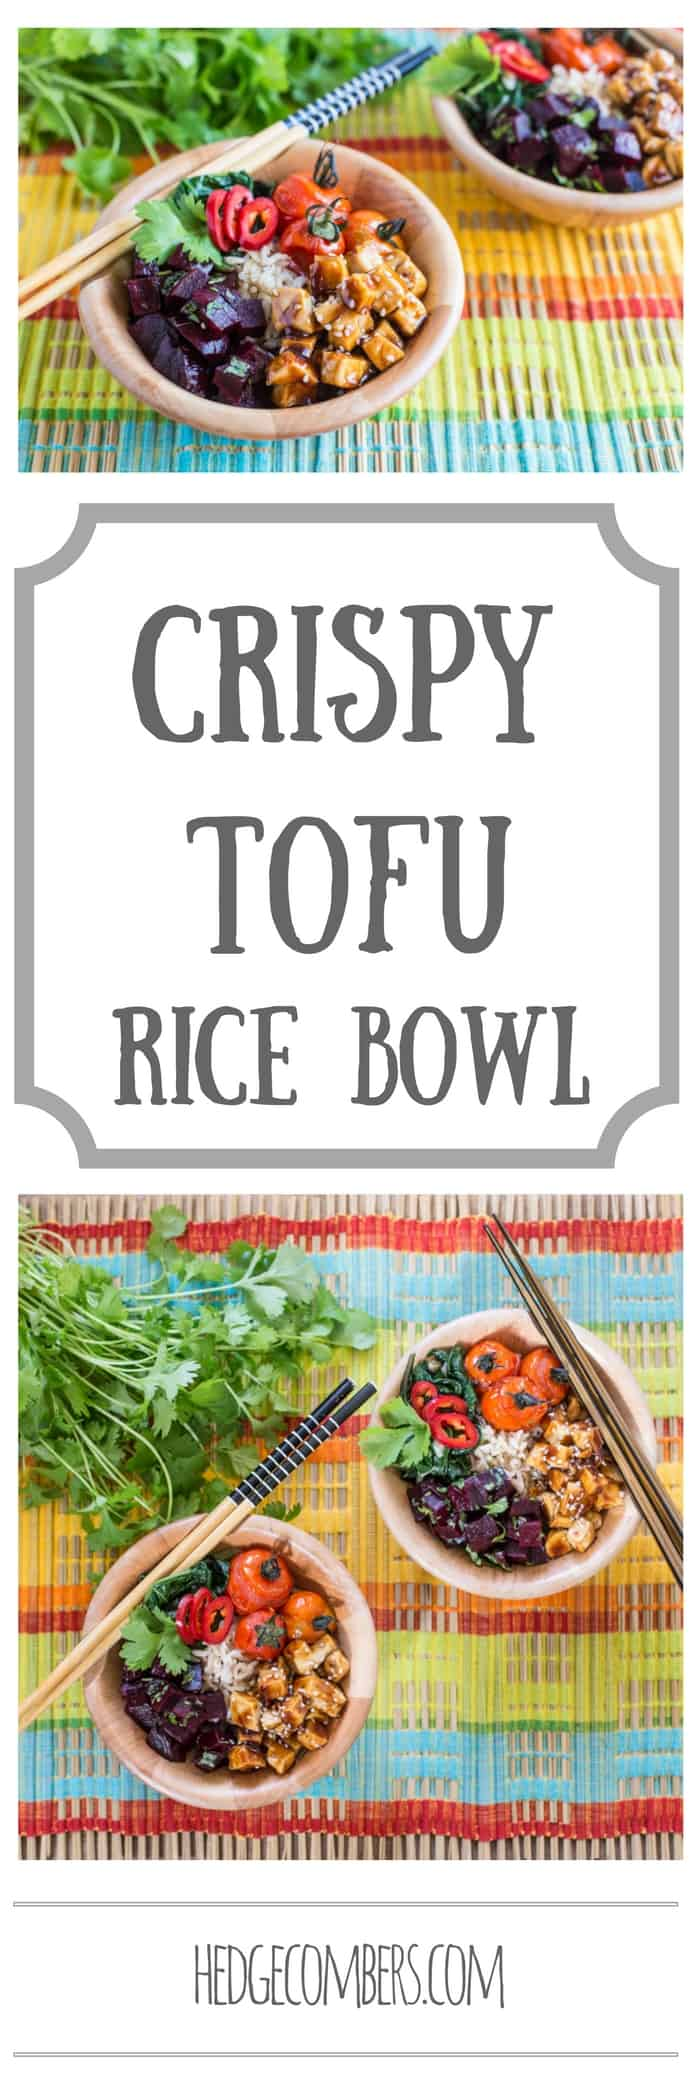 Crispy Tofu Rice Bowl